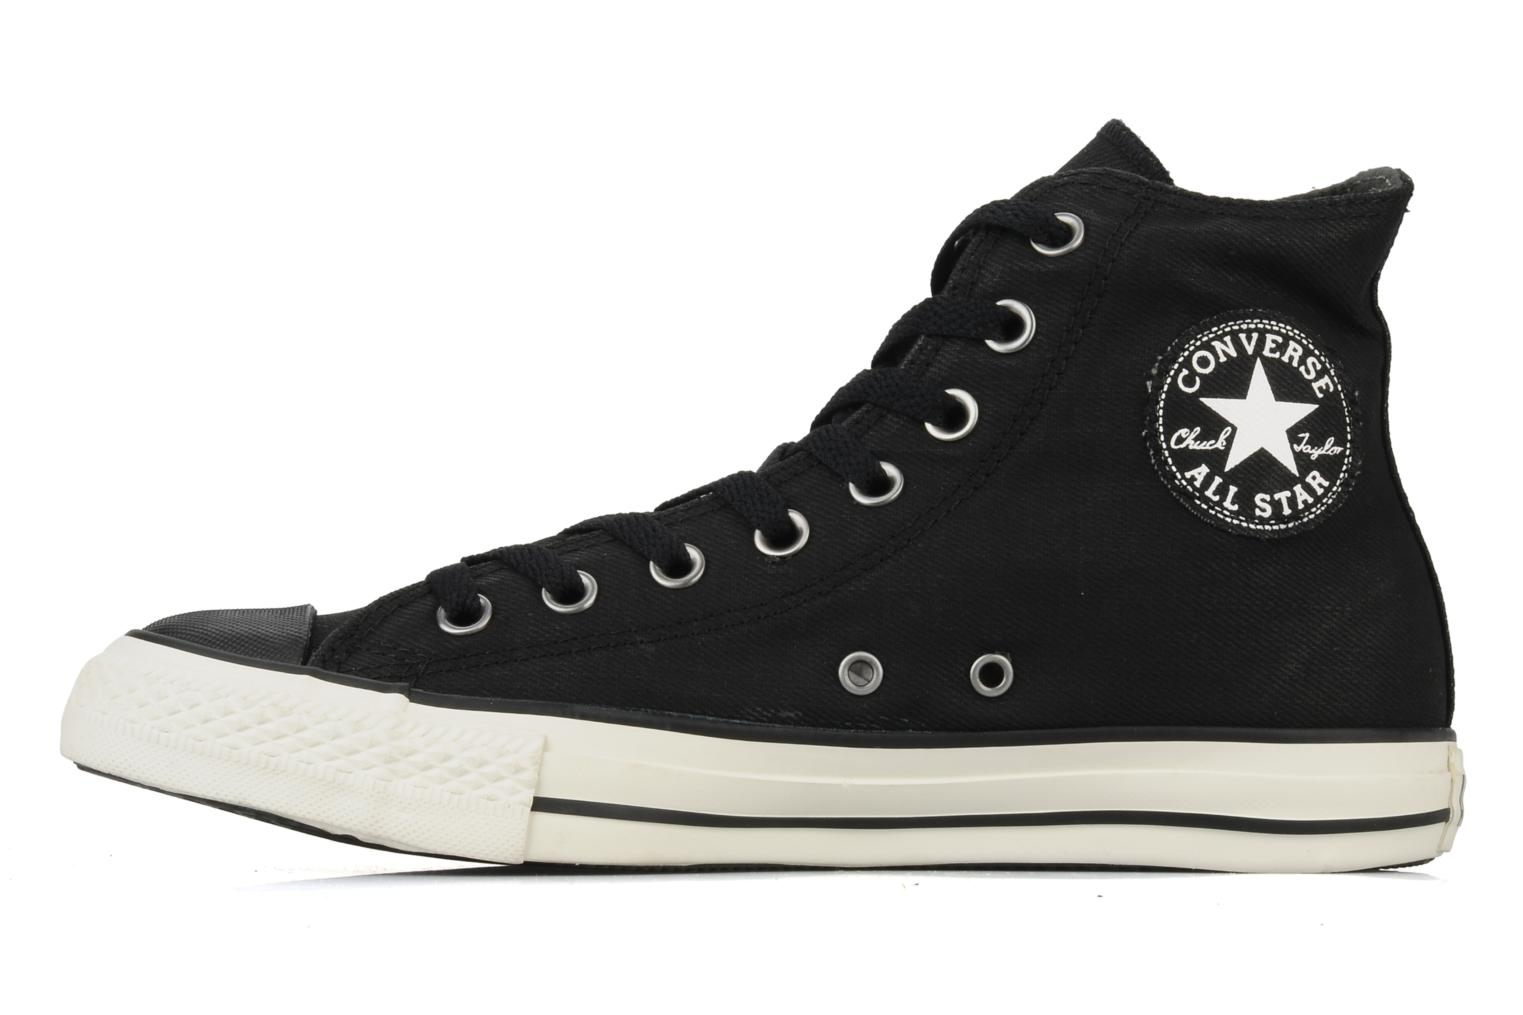 Baskets Converse Chuck taylor all star coated twill textile hi m Noir vue face